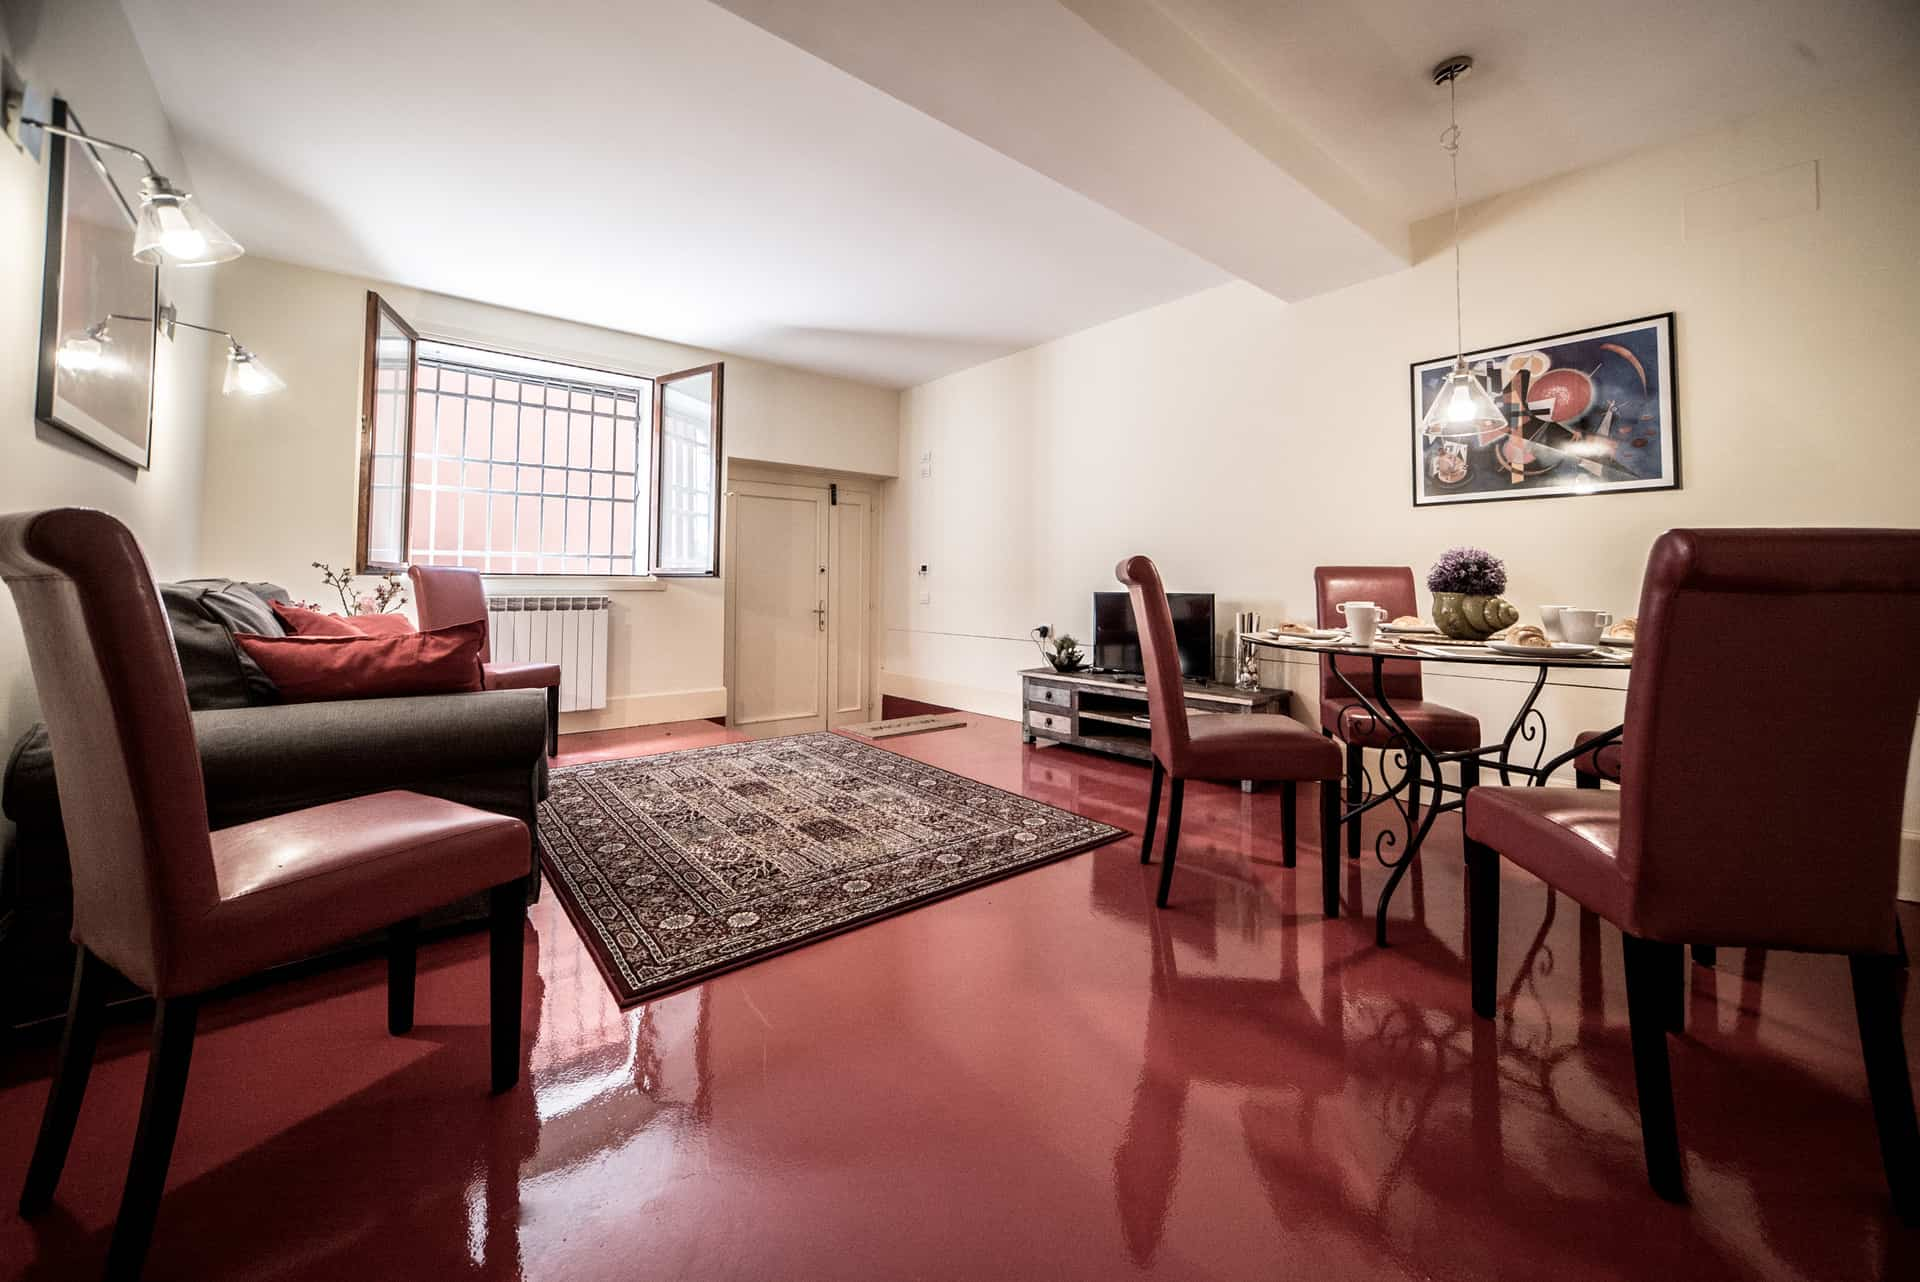 Large living room with red floor and small dining table - Kandinskij House Apartment